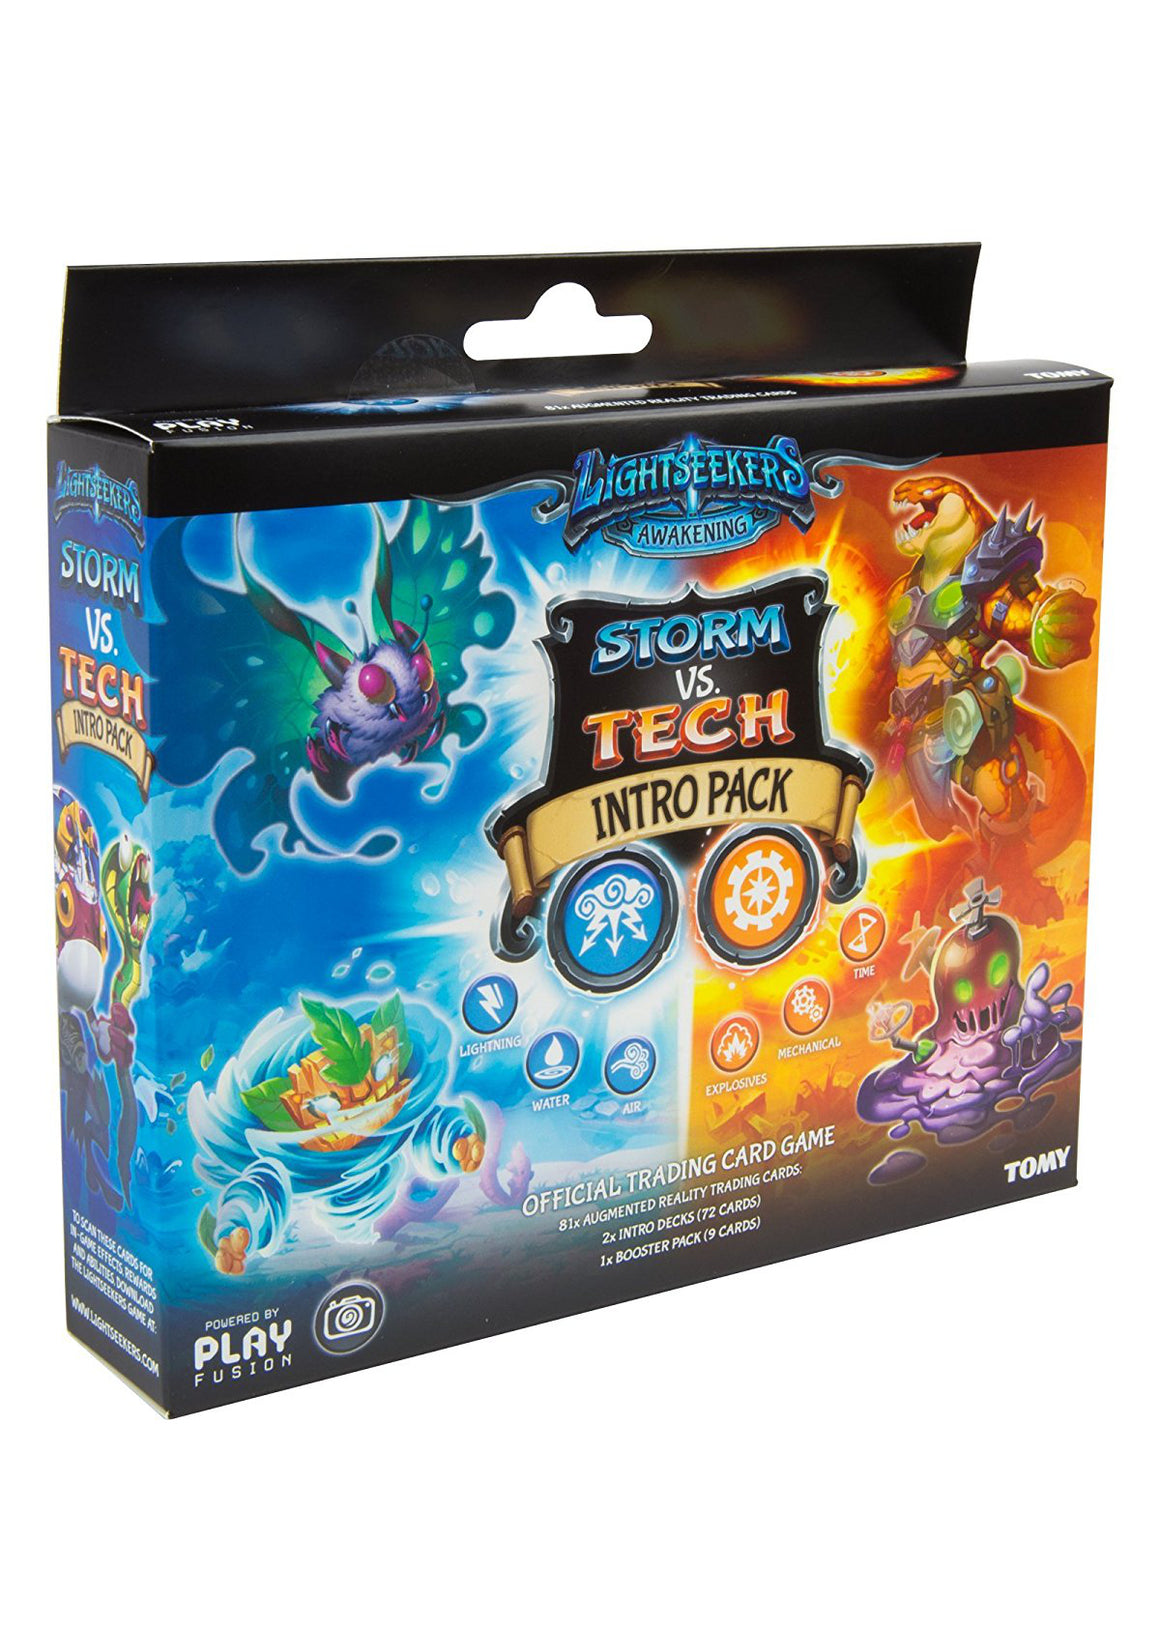 Lightseekers - Intro Pack Storm vs. Tech